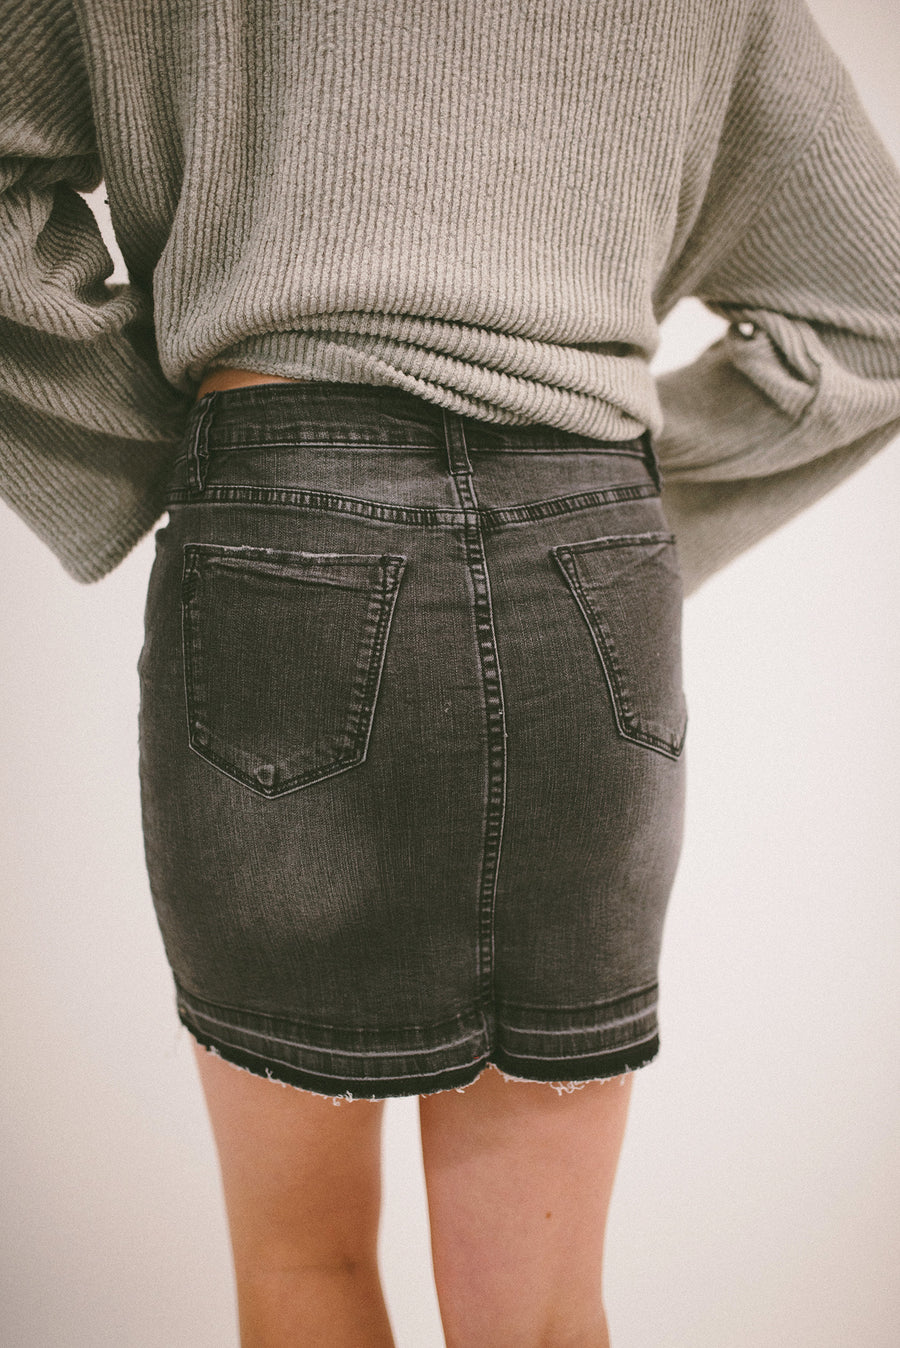 ALL THE RIGHT MOVES FRAYED HEM DENIM SKIRT